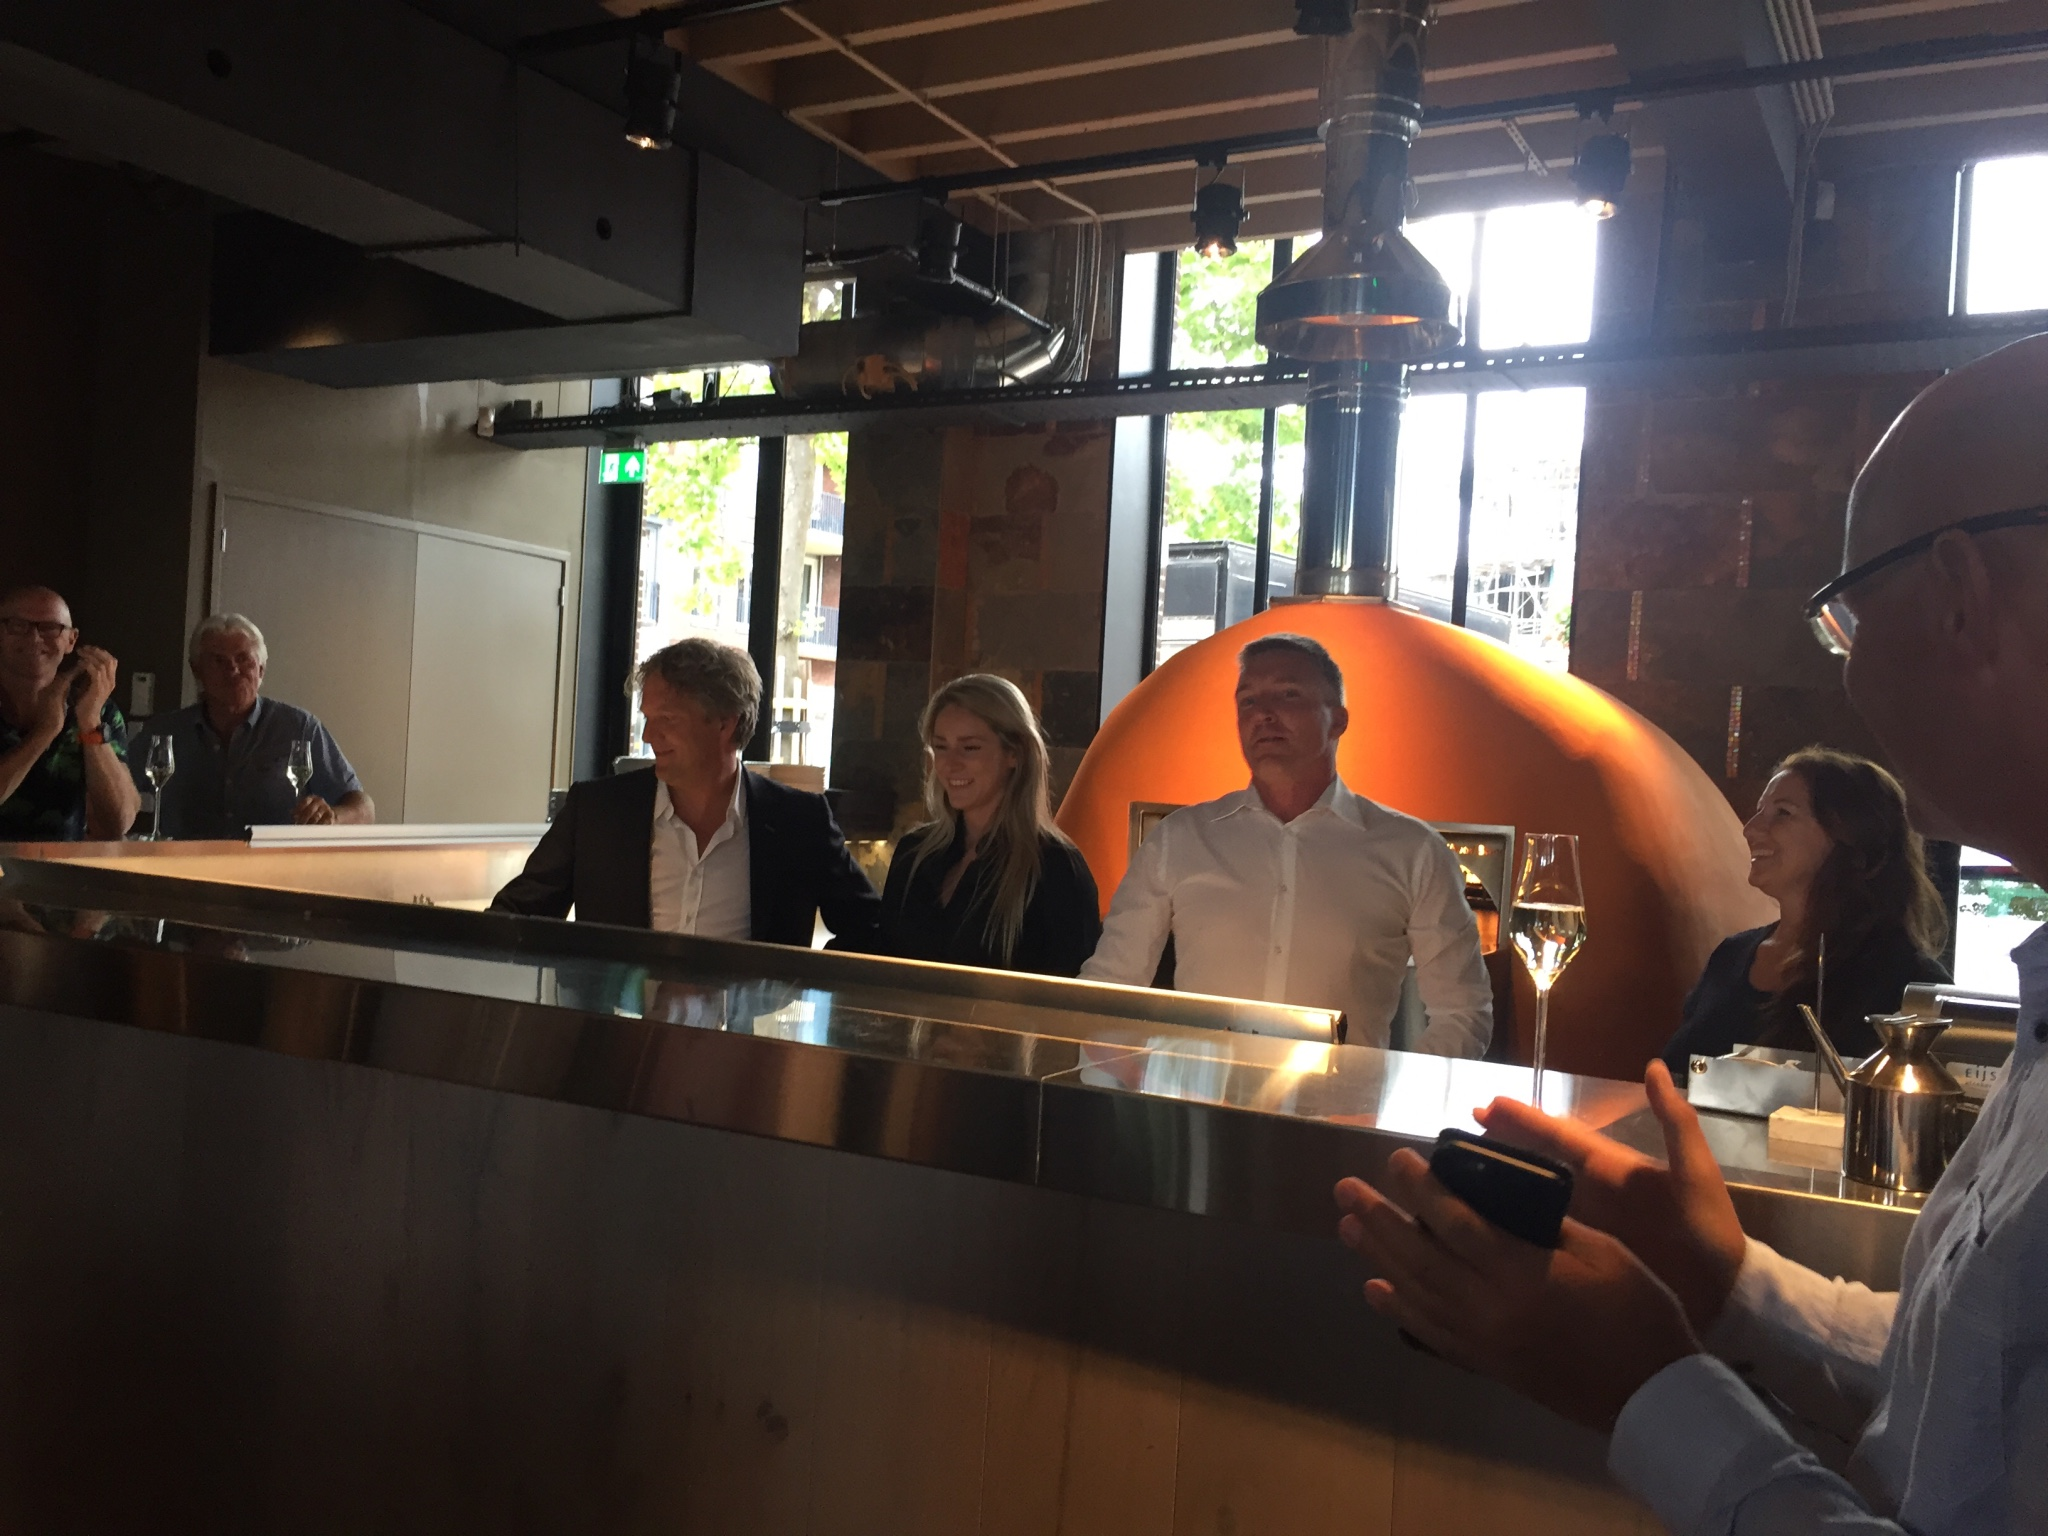 Woodstone Pizza & Wine geopend in Alphen a/d Rijn